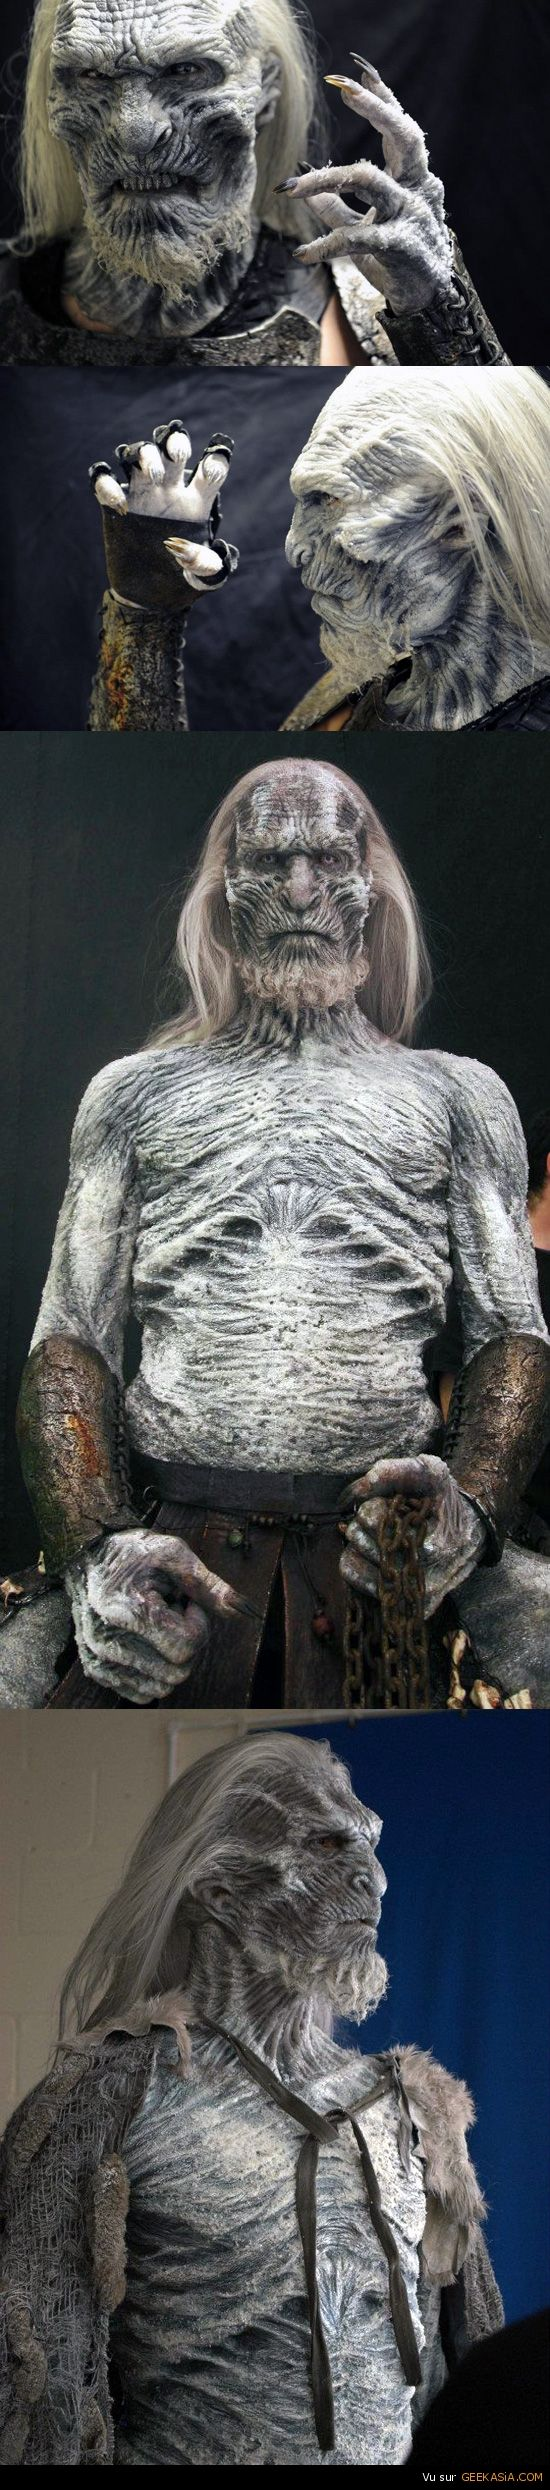 Game of Thrones - Le maquillage impressionnant du marcheur blanc réalisé par Creature Inc. Ltd